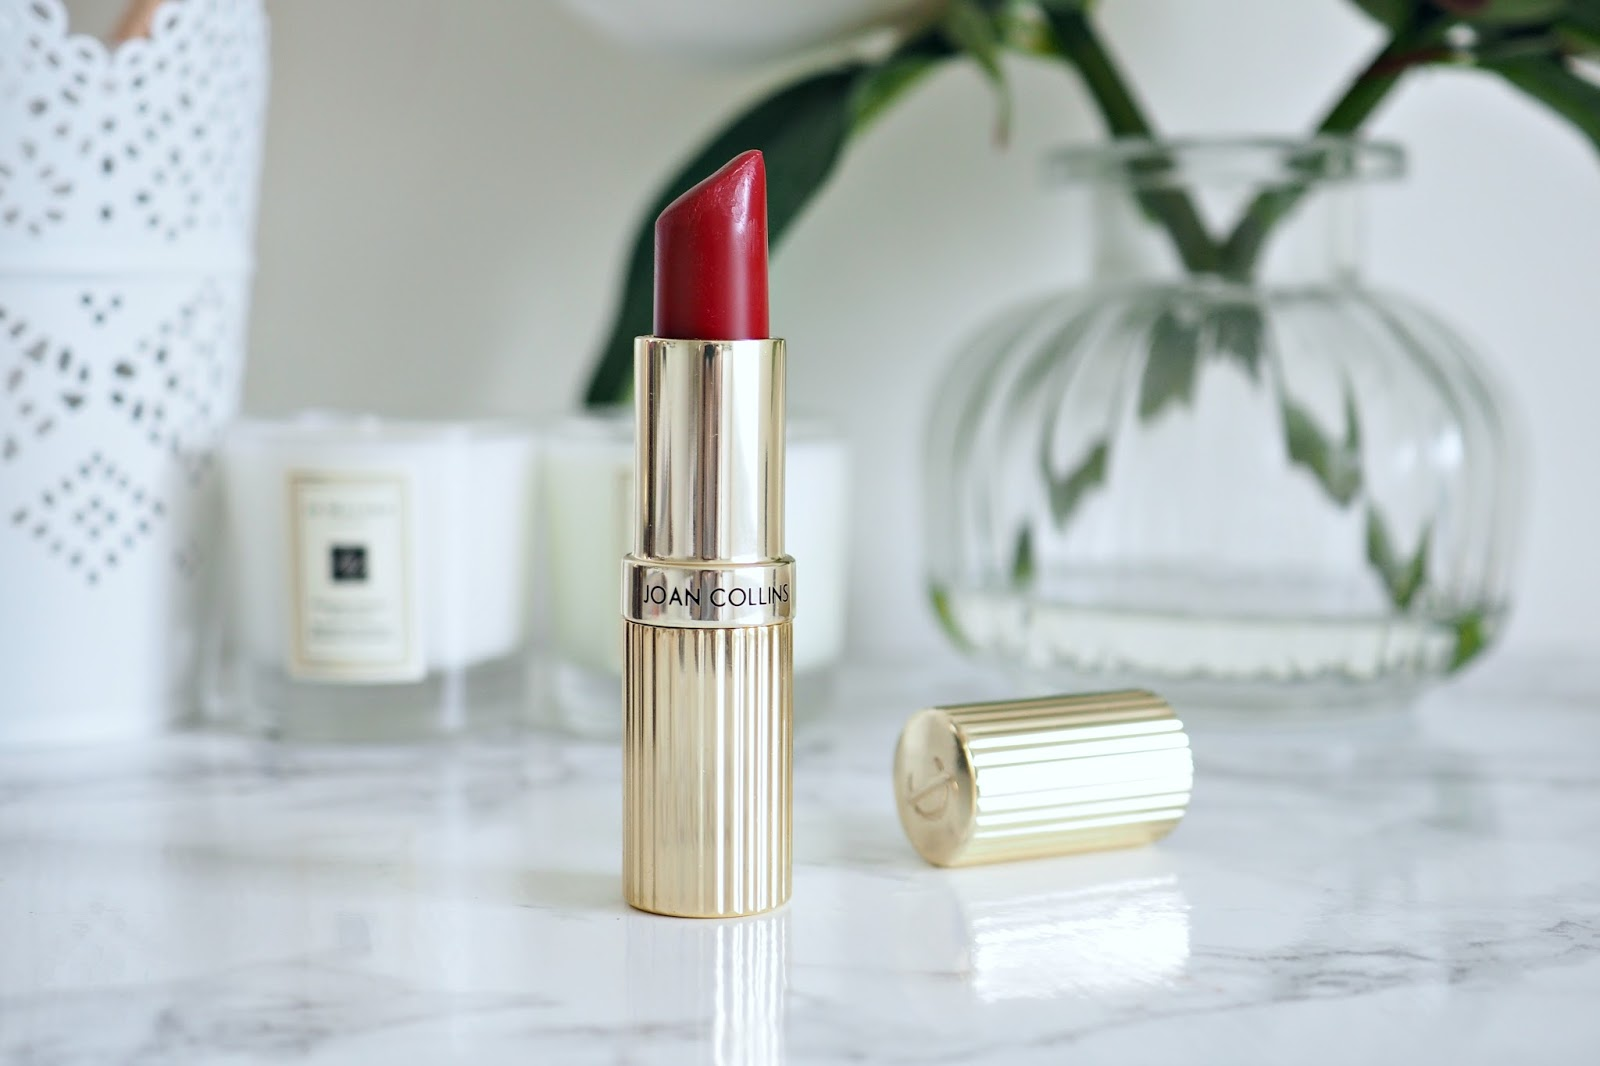 Joan Collins Divine Lips Lipstick in shade 'Crystal'